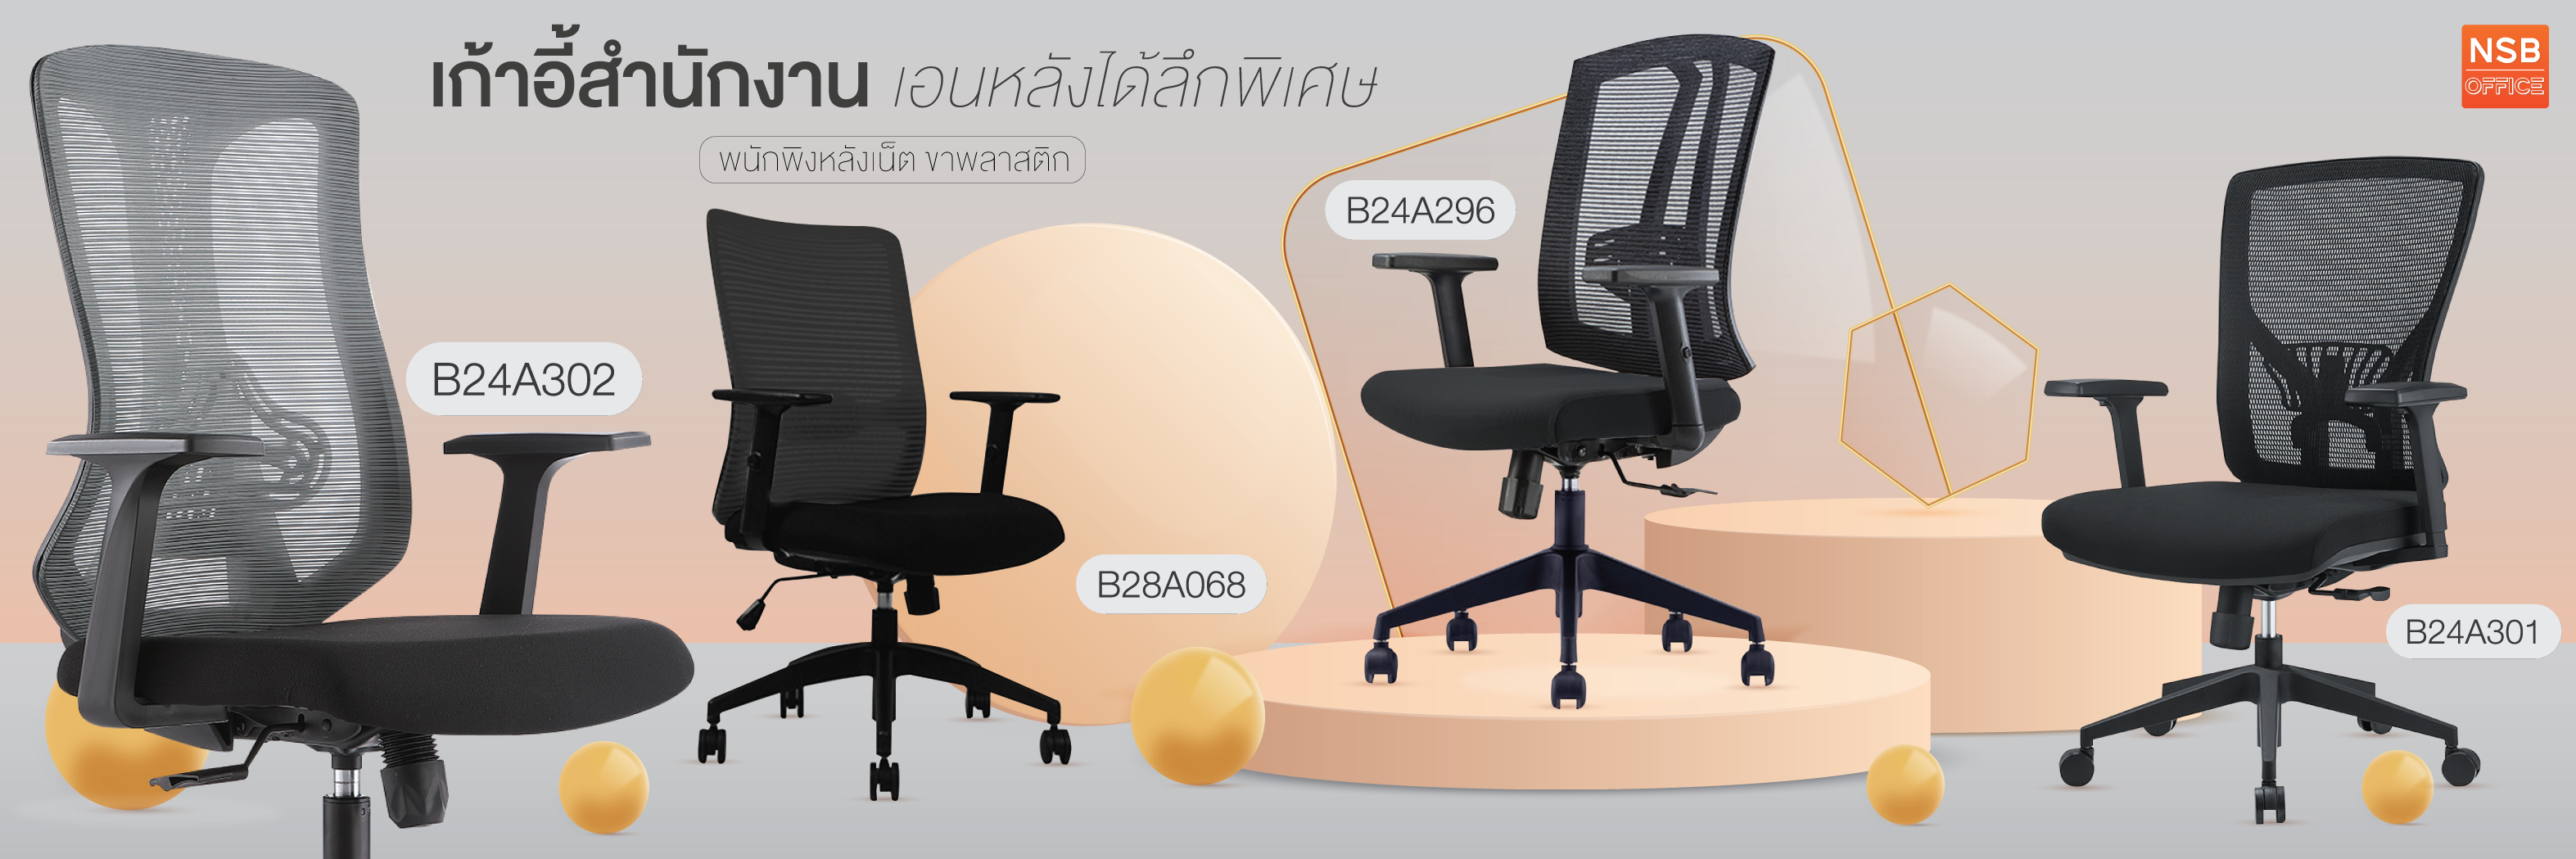 4 Mesh office chairs